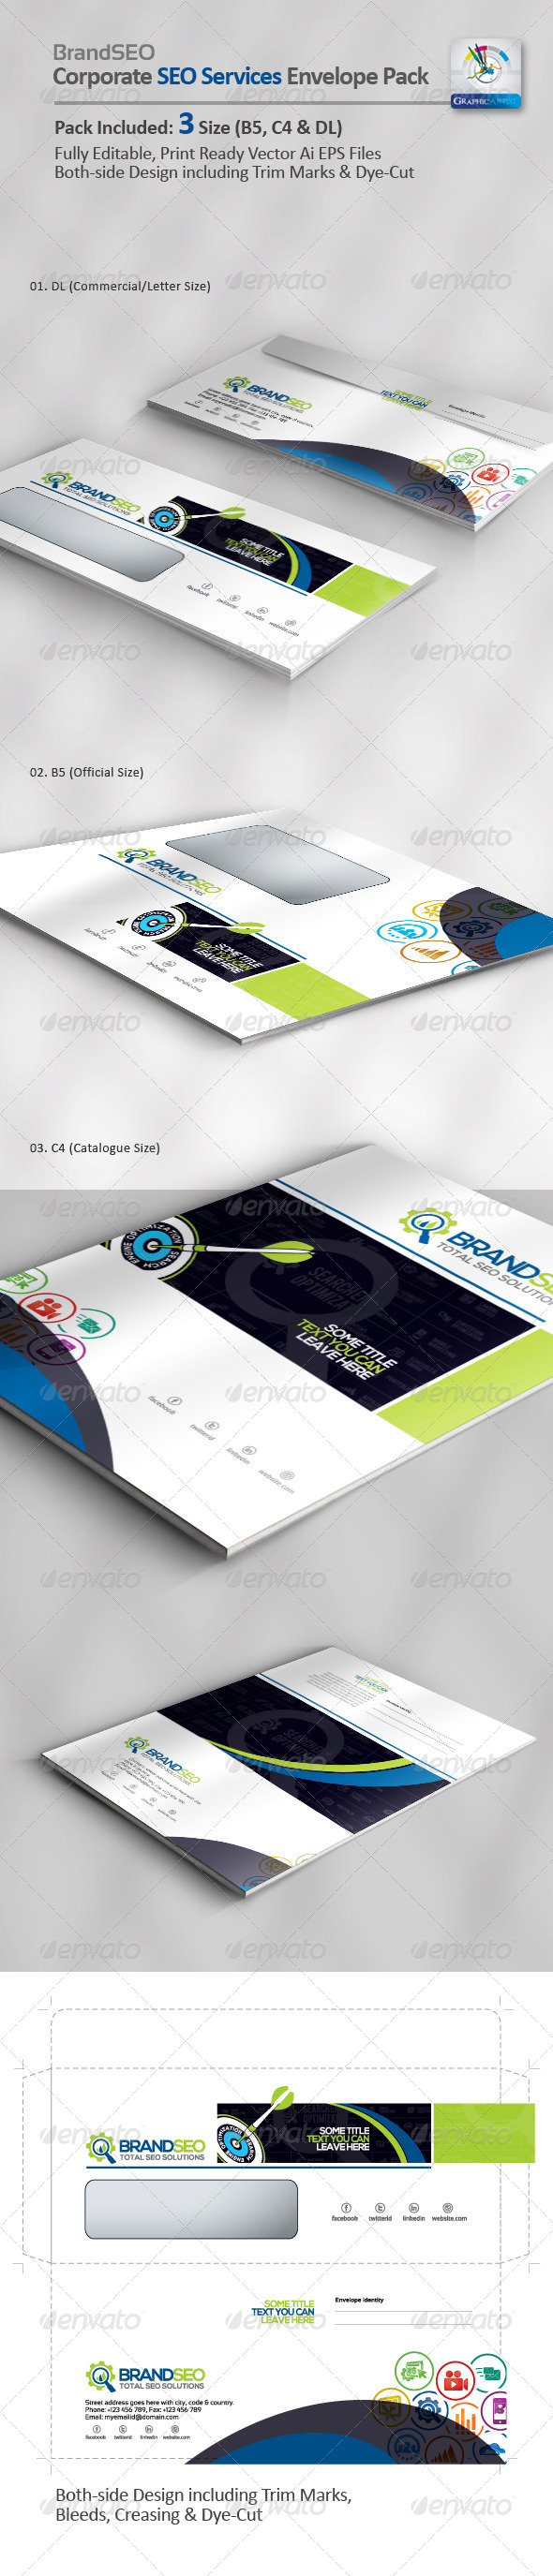 GraphicRiver BrandSEO Creative SEO Services Envelope Pack 4367955